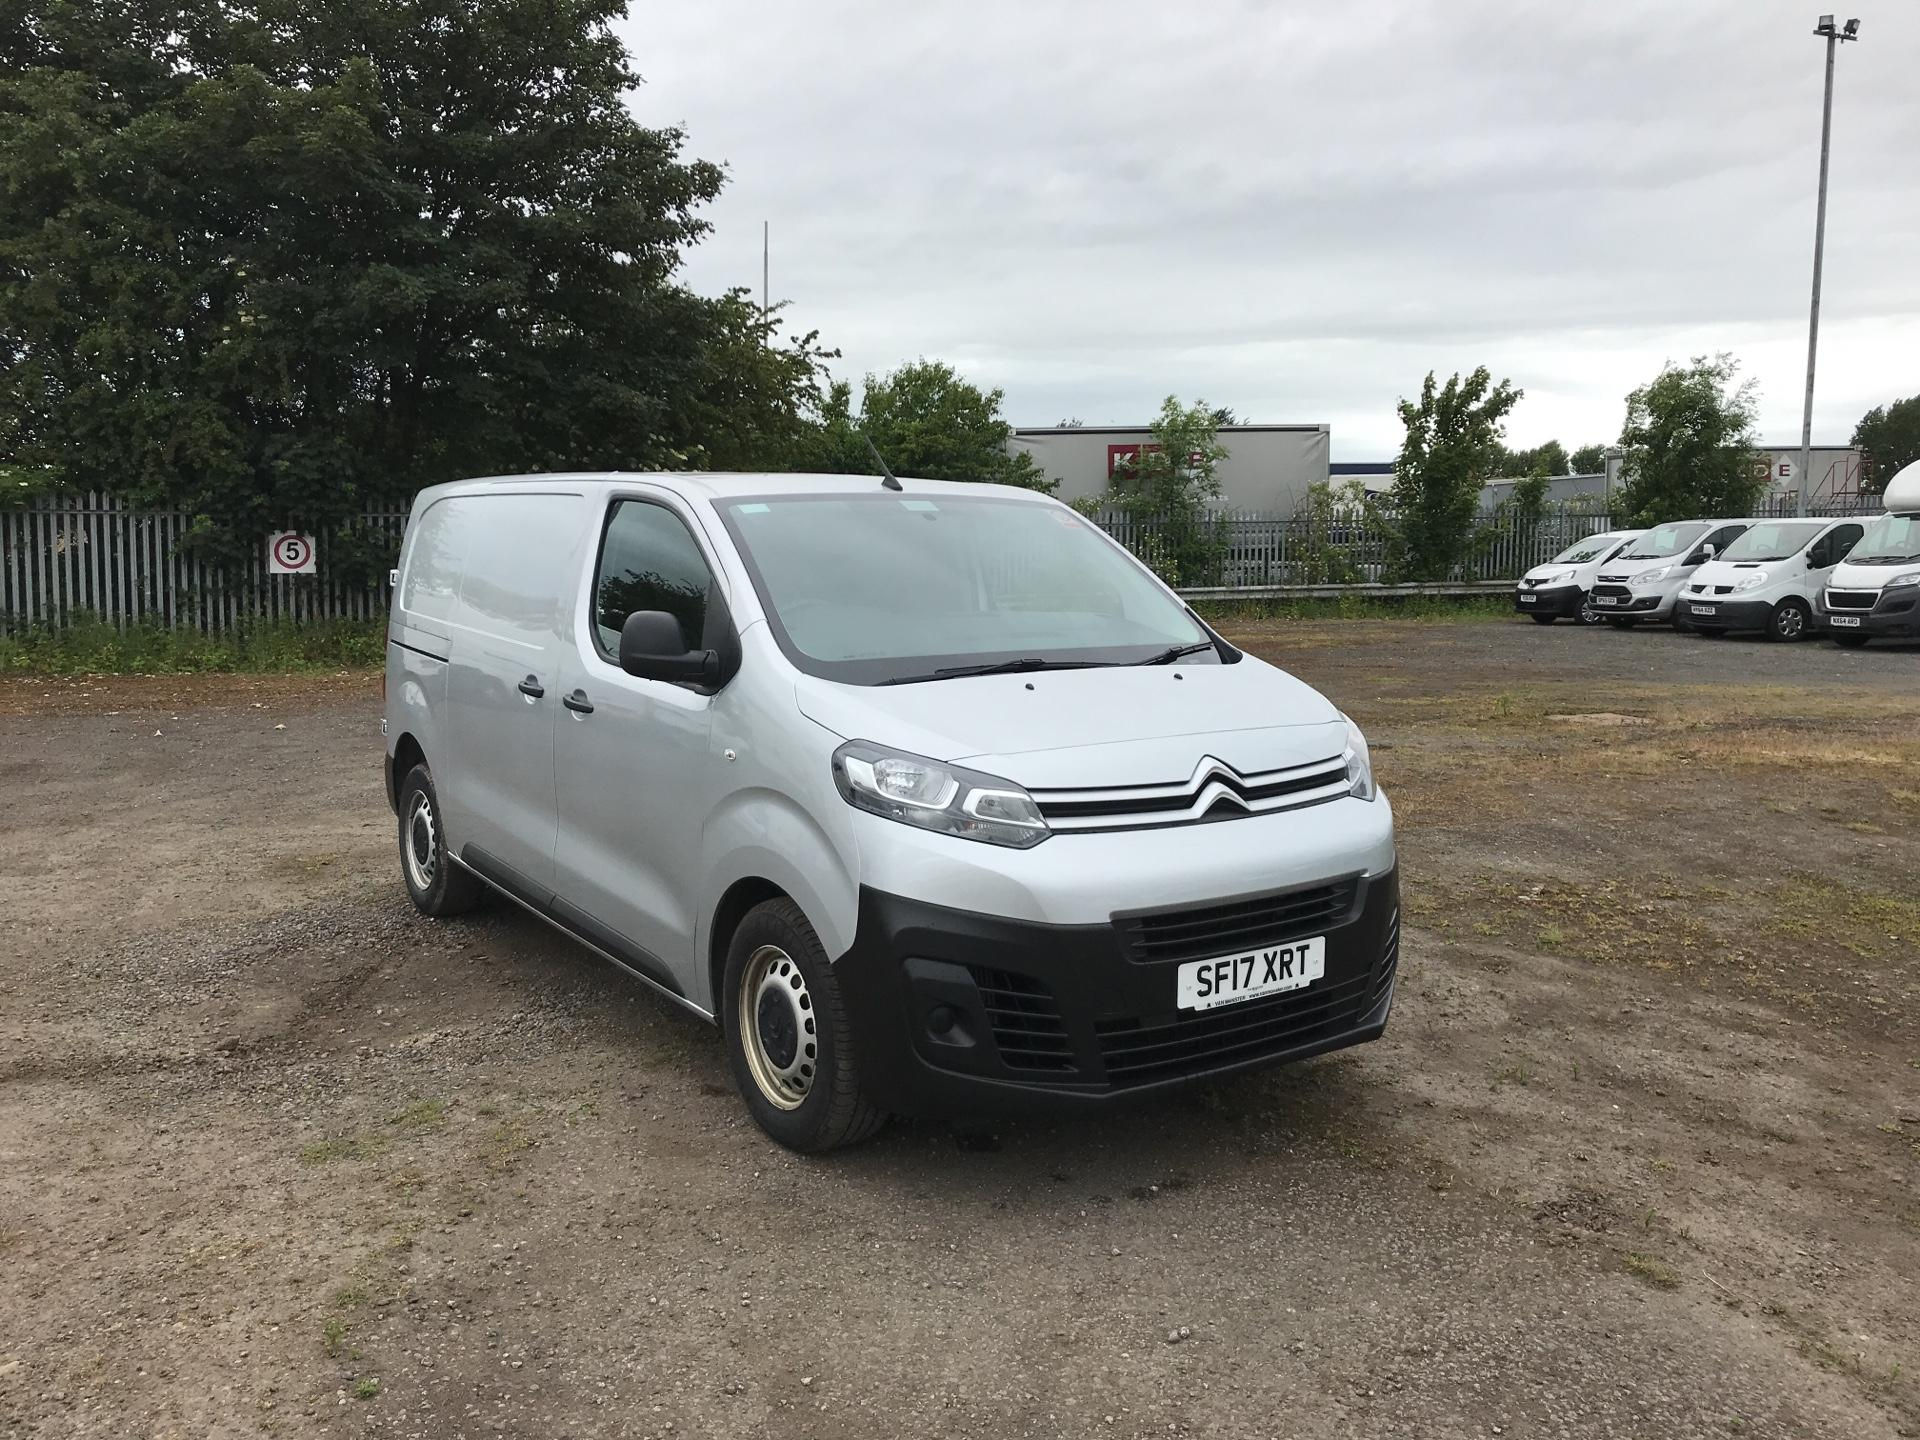 2017 Citroen Dispatch 1400 2.0 BLUE HDI ENTERPRISE 120 VAN (SF17XRT)